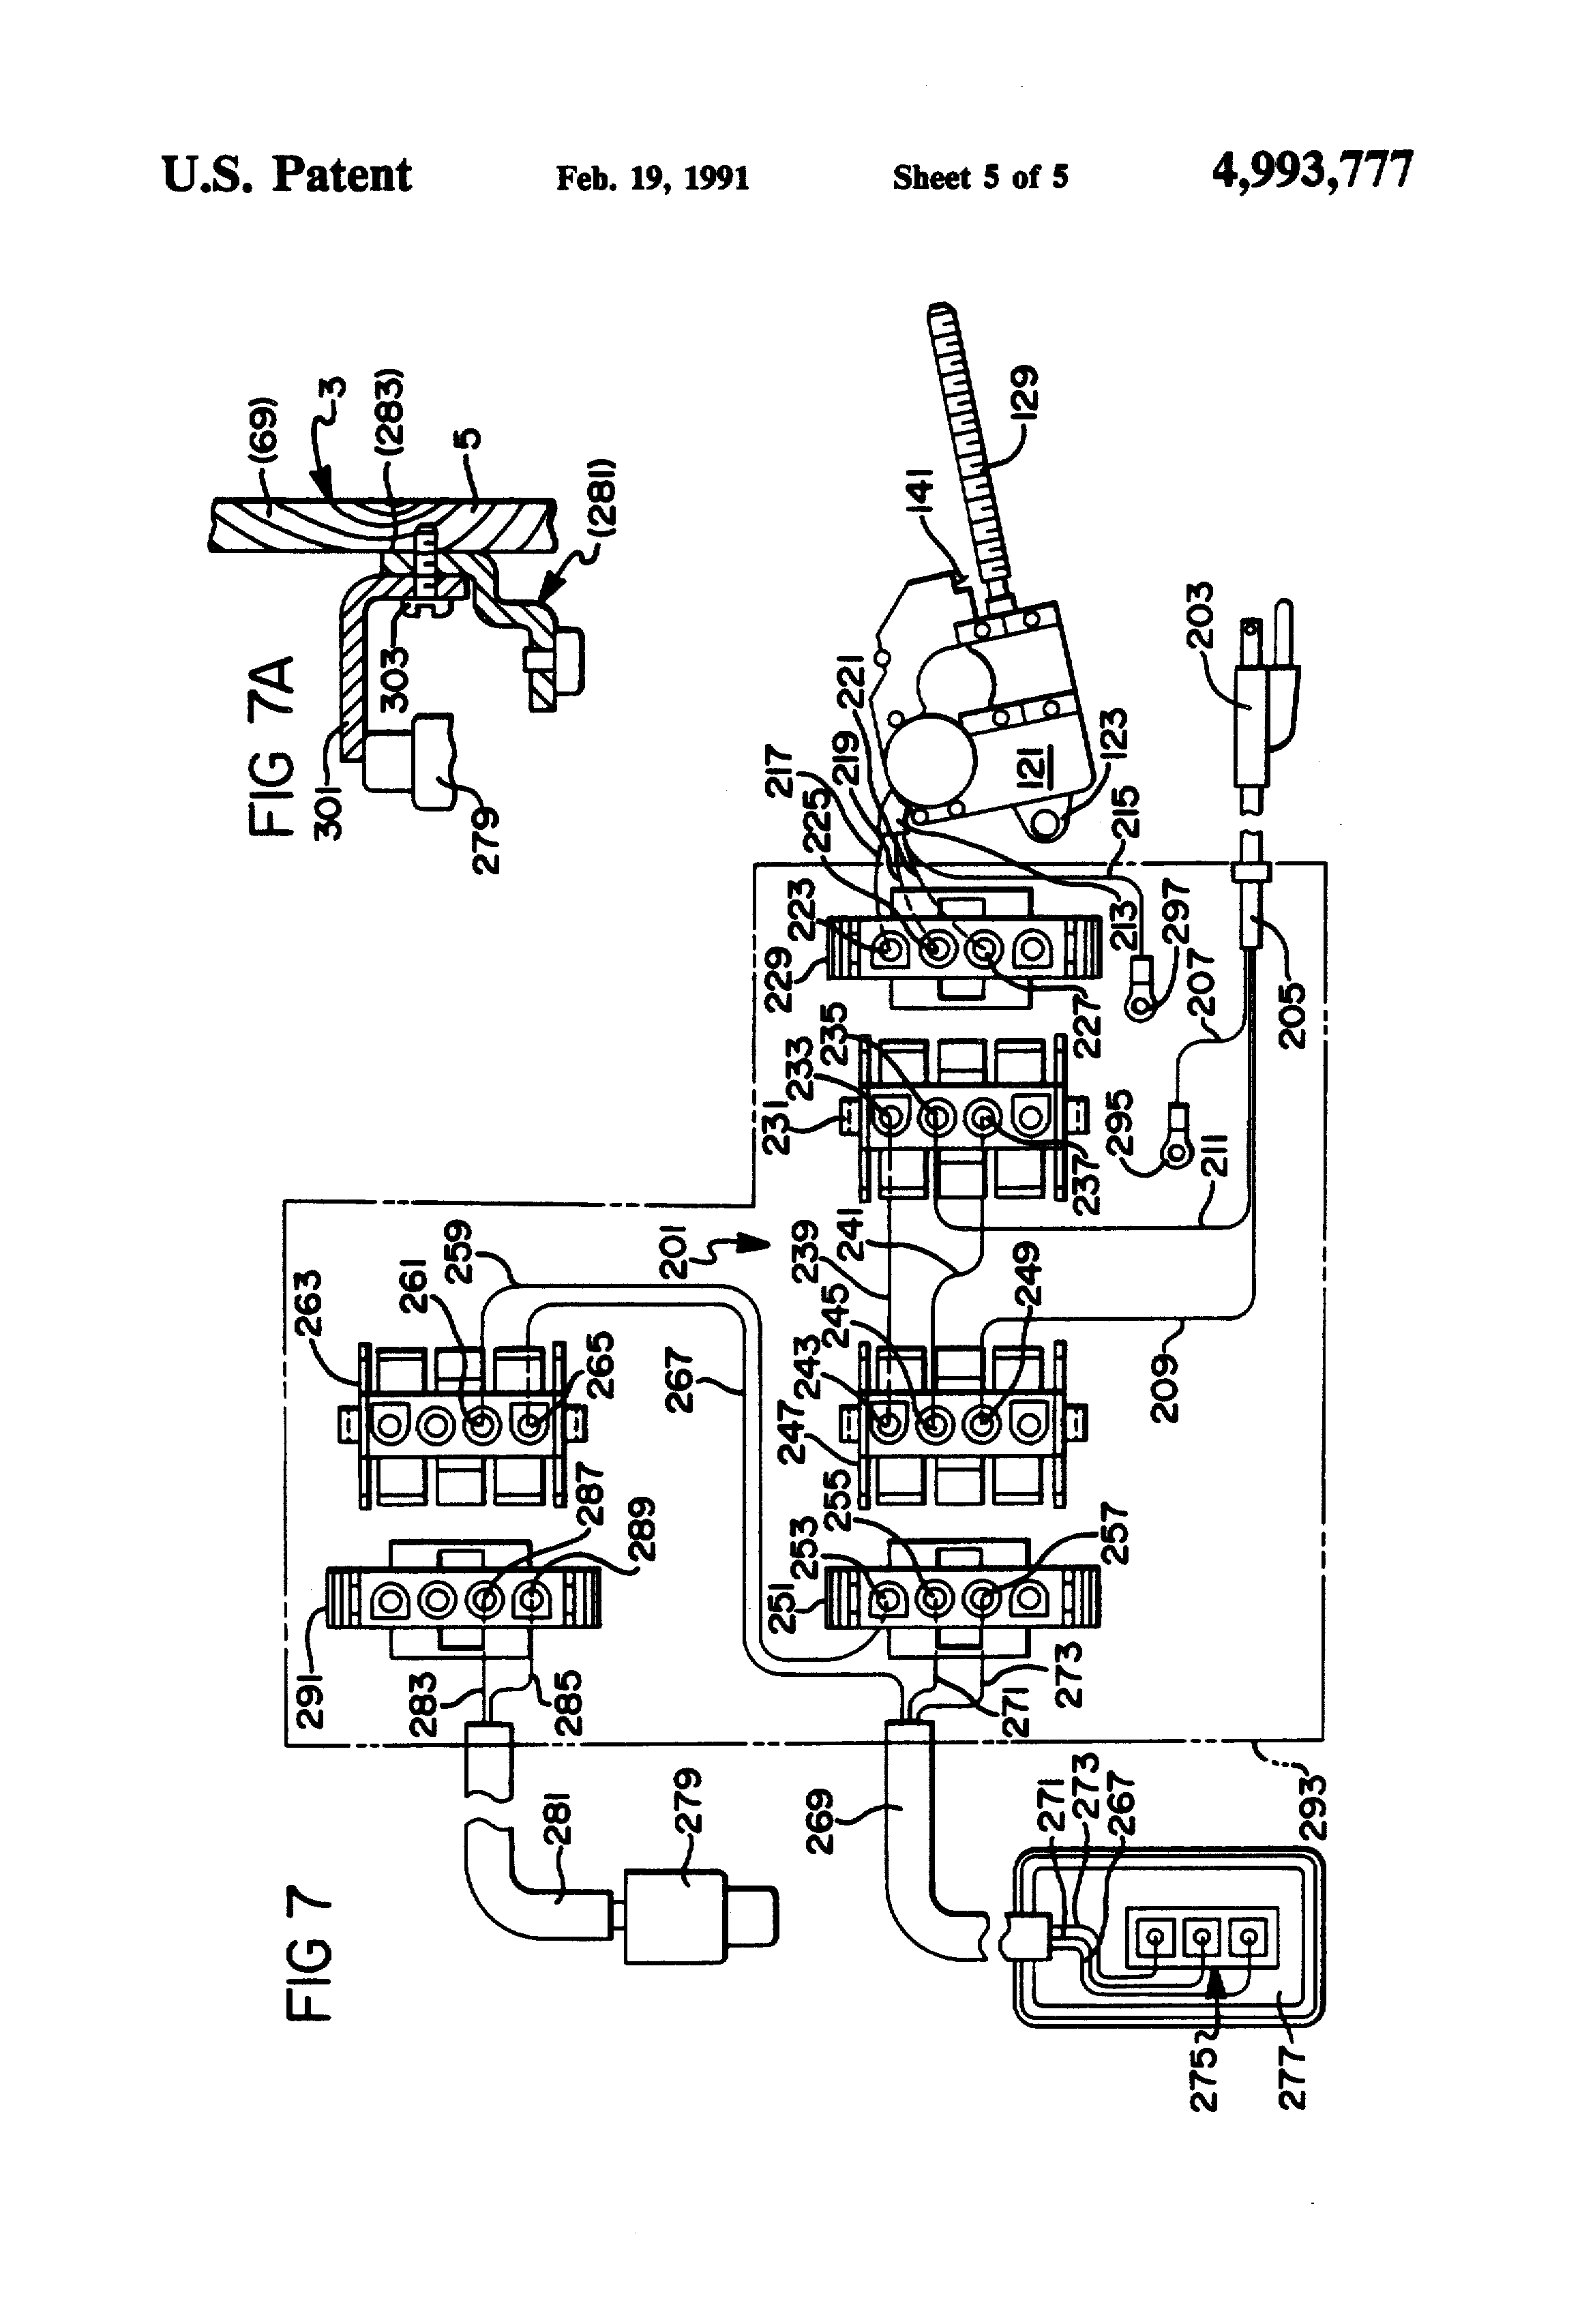 US4993777 5 reliance electric wiring diagram for lift rotary pump diagram elevator wiring diagram free at money-cpm.com